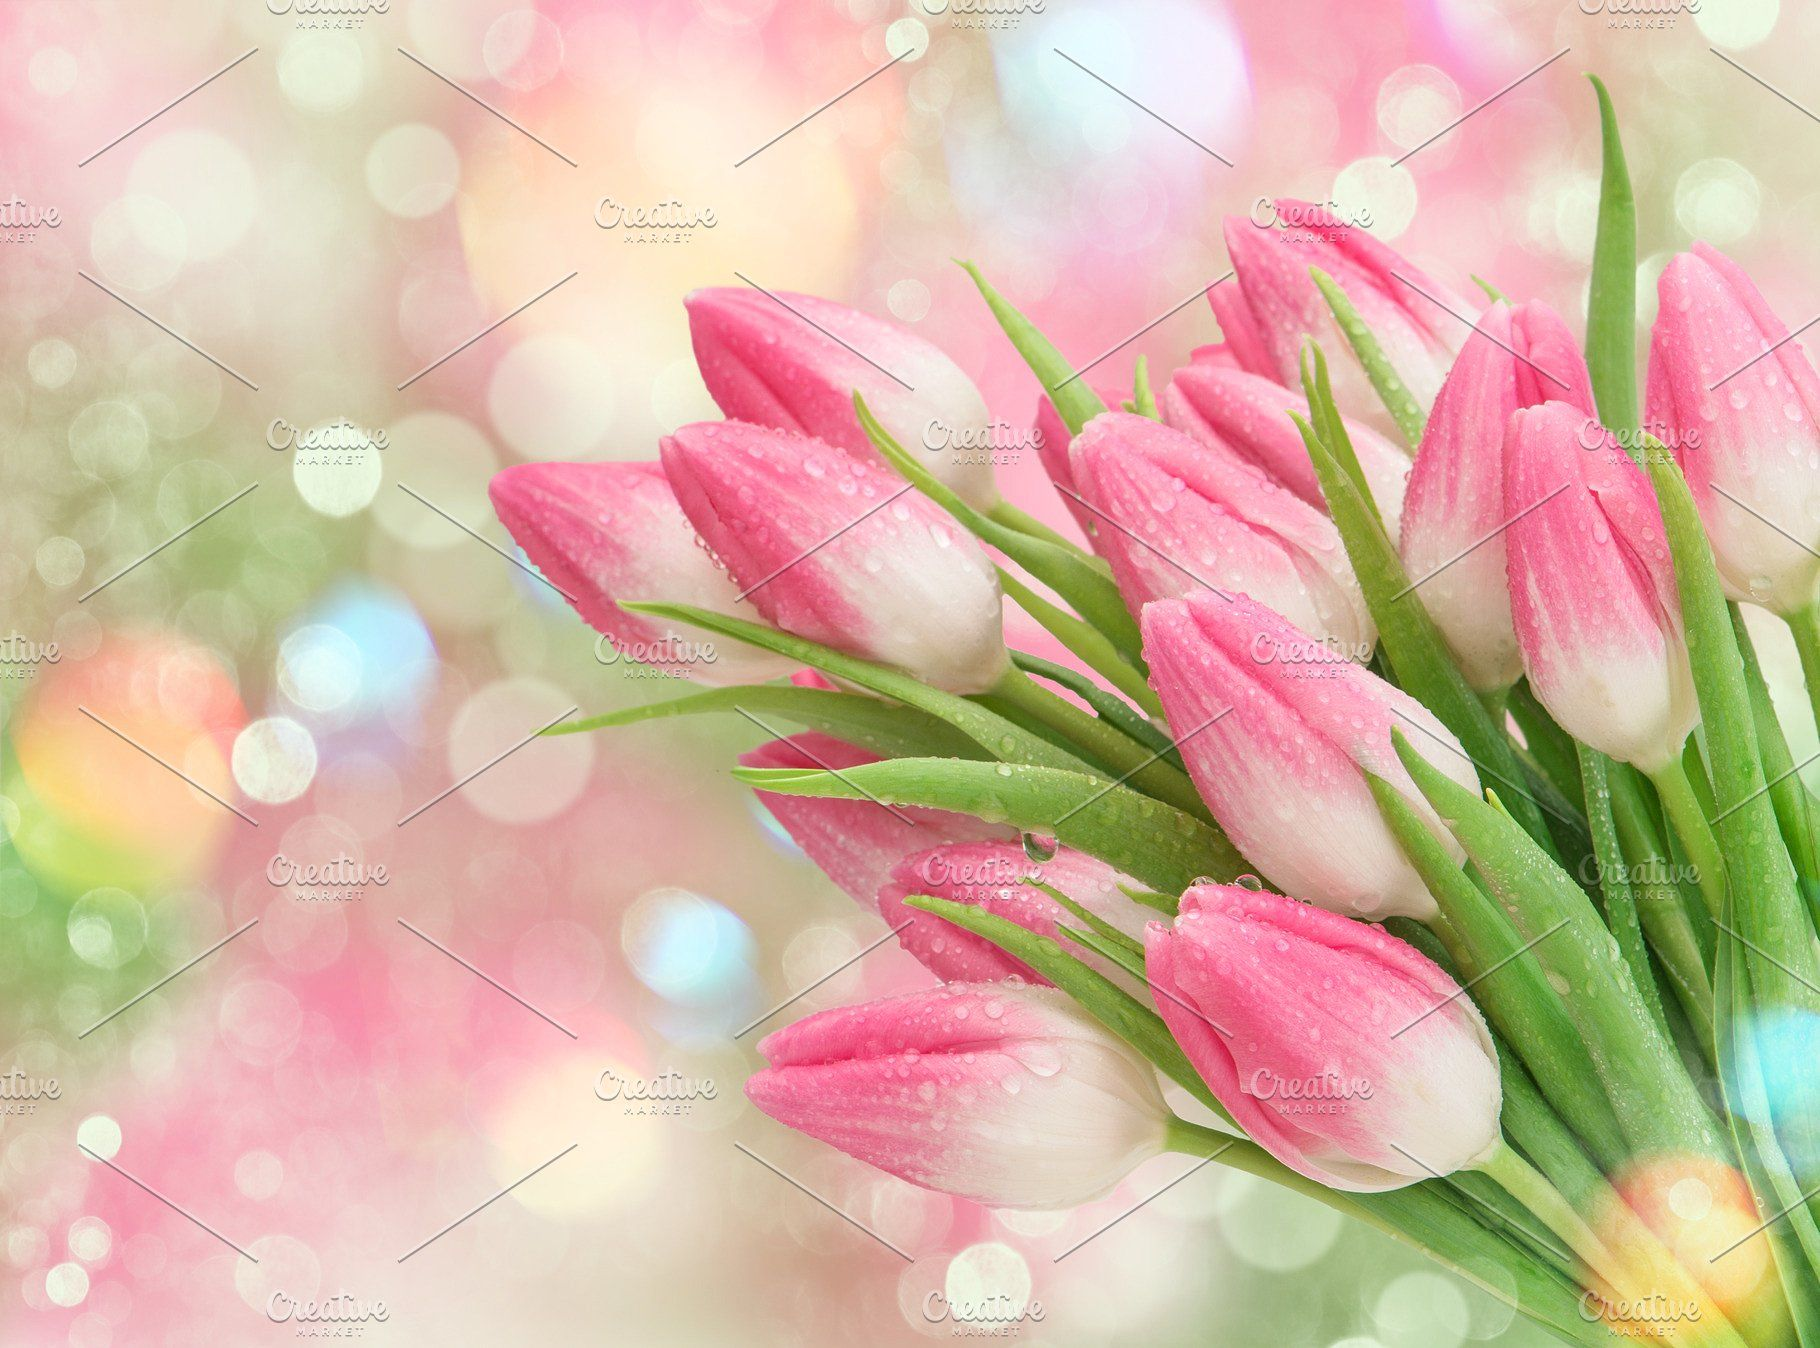 Pink Tulip Flowers Spring Nature Bac Pink Flower Photos Spring Flowers Background Pink Tulips